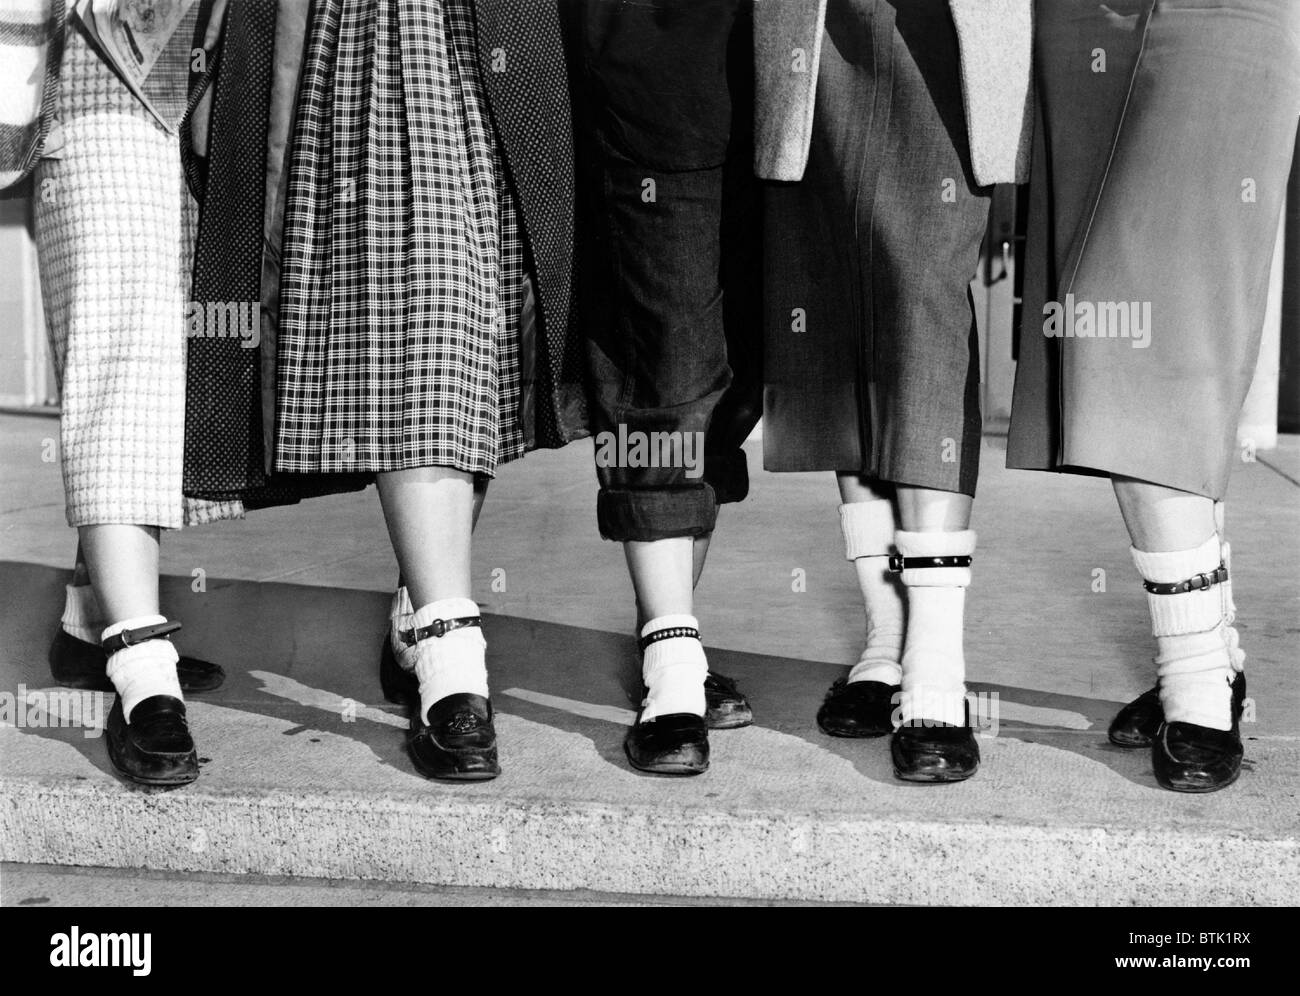 Bobby socks, ankle high, often thick or decorated, were popular with young Americans in the 1940s and 1950s. 1953 - Stock Image